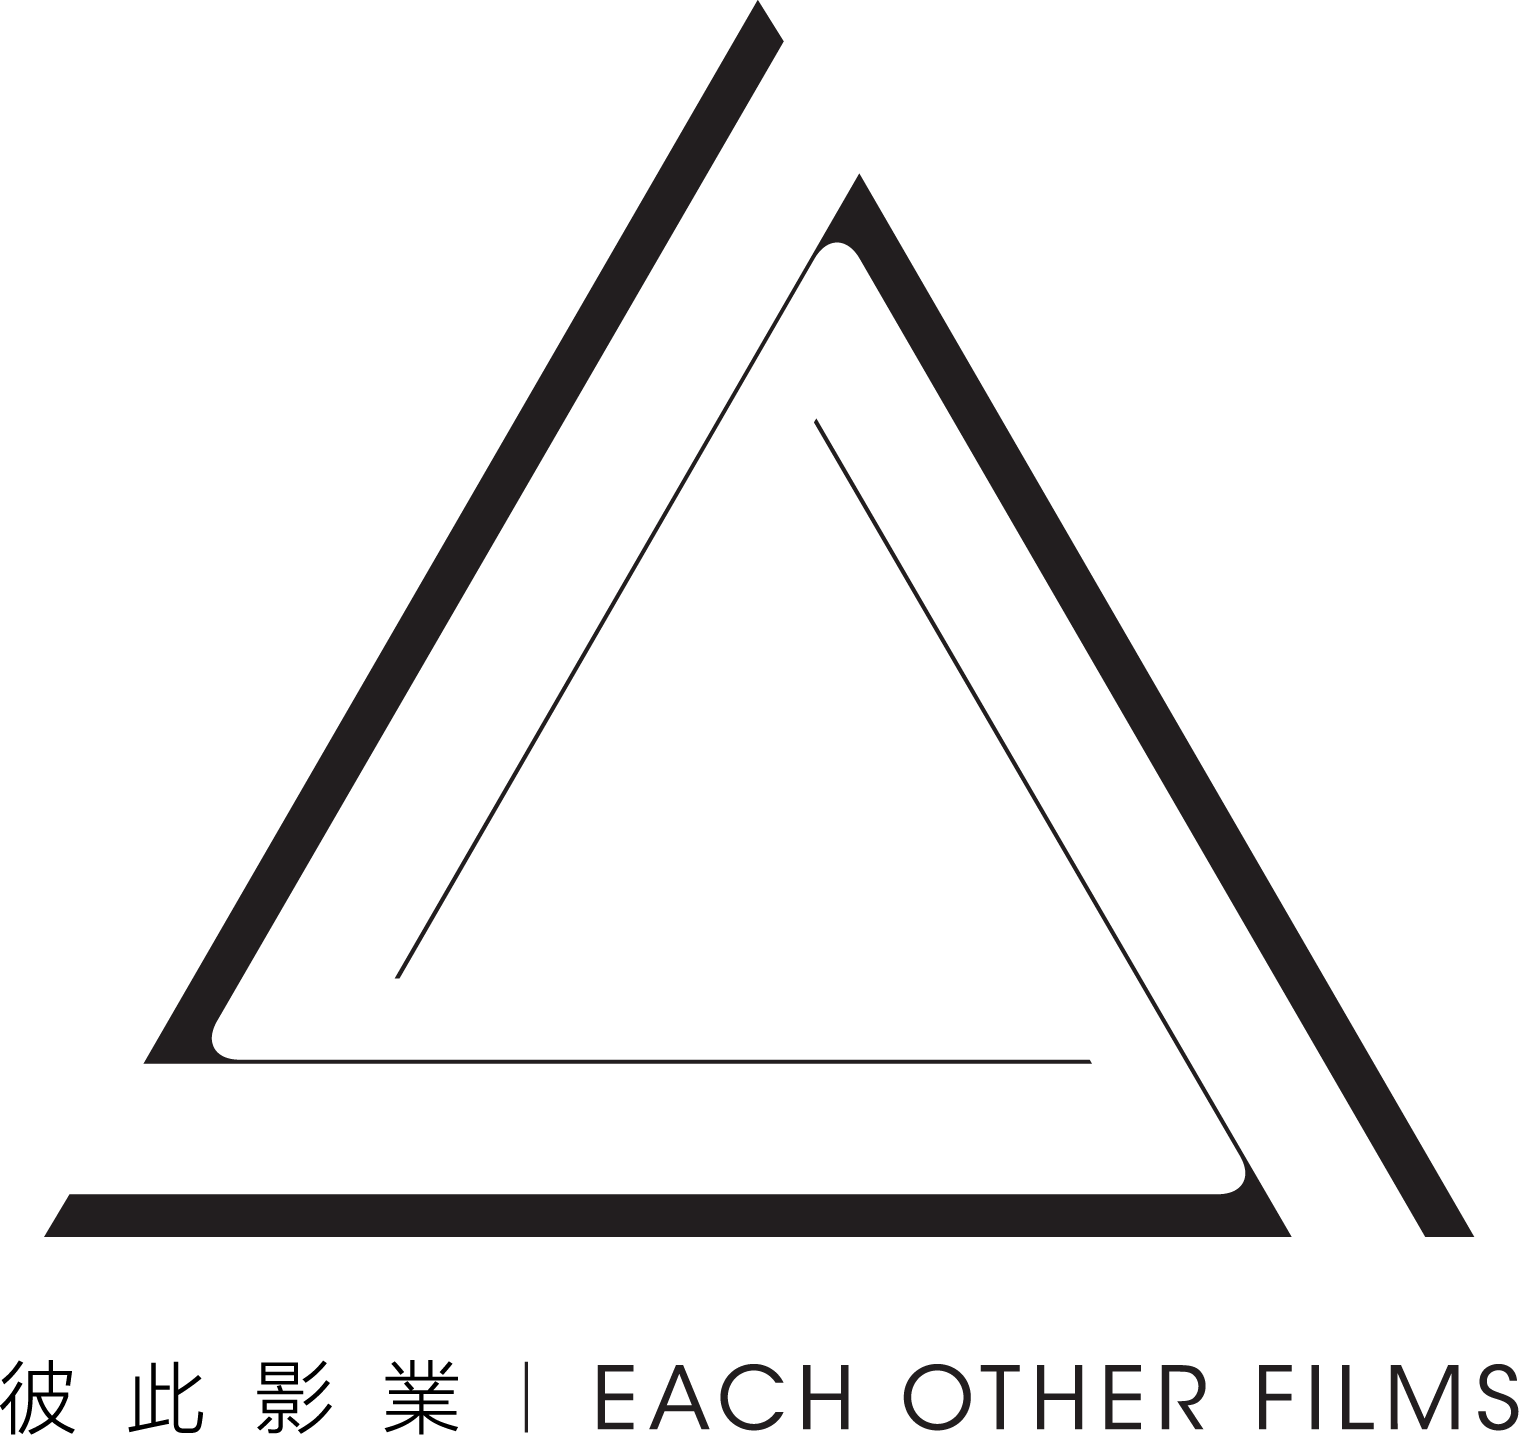 Each Other Films